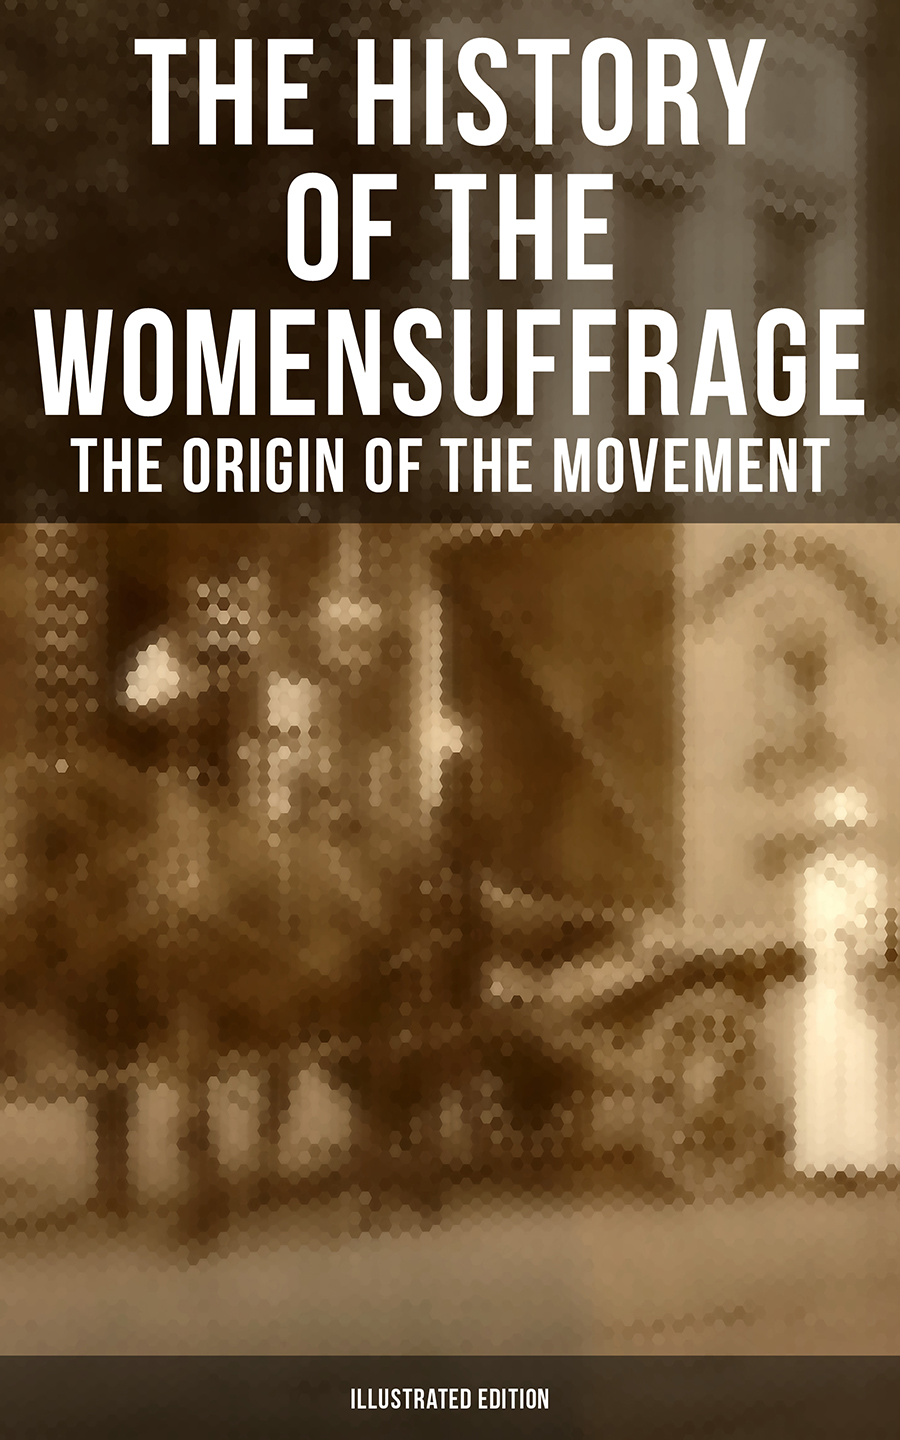 Elizabeth Cady Stanton The History of the Women's Suffrage: The Origin of the Movement (Illustrated Edition) london the illustrated history